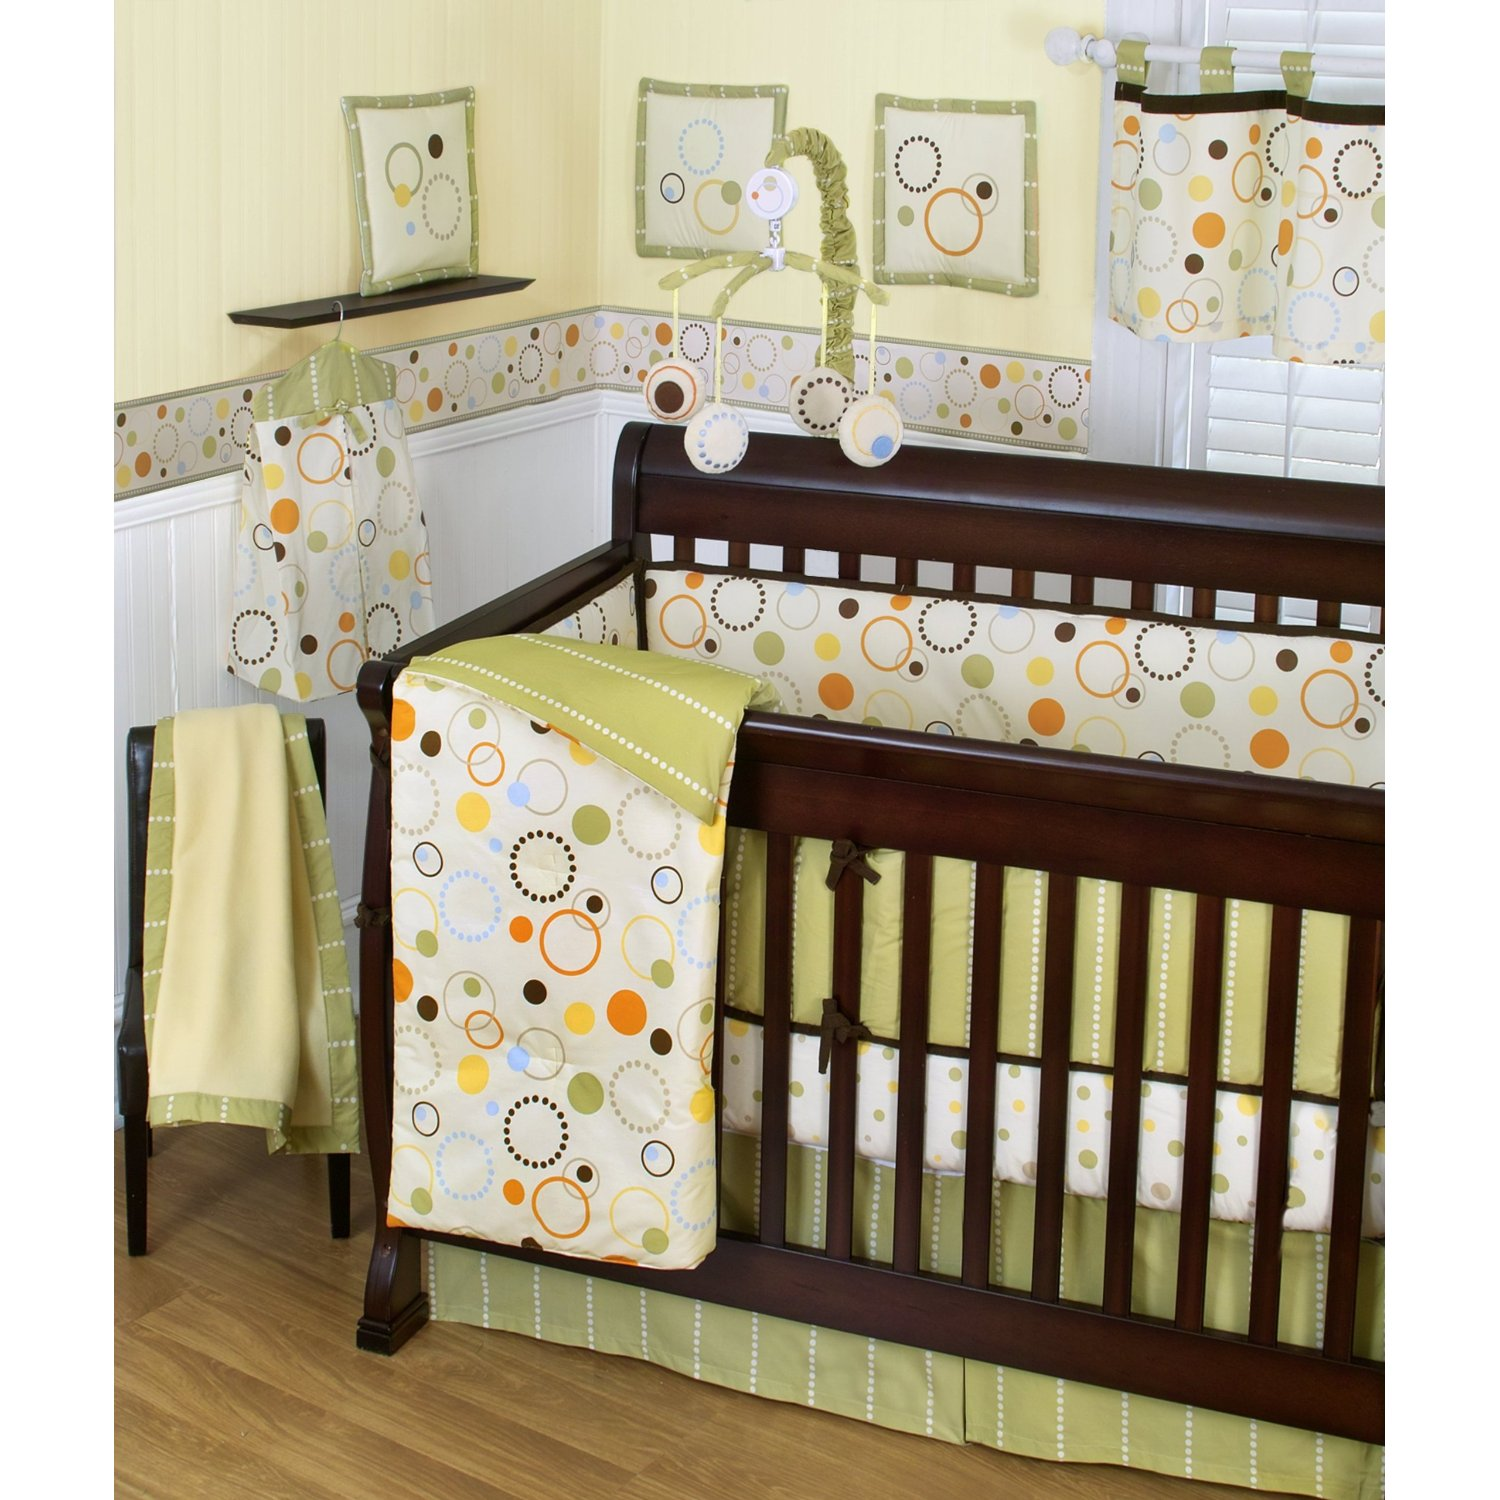 10 Gender Neutral Nursery Decorating Ideas: Crib Bedding Trend, Gender Neutral Crib Bedding A Guide